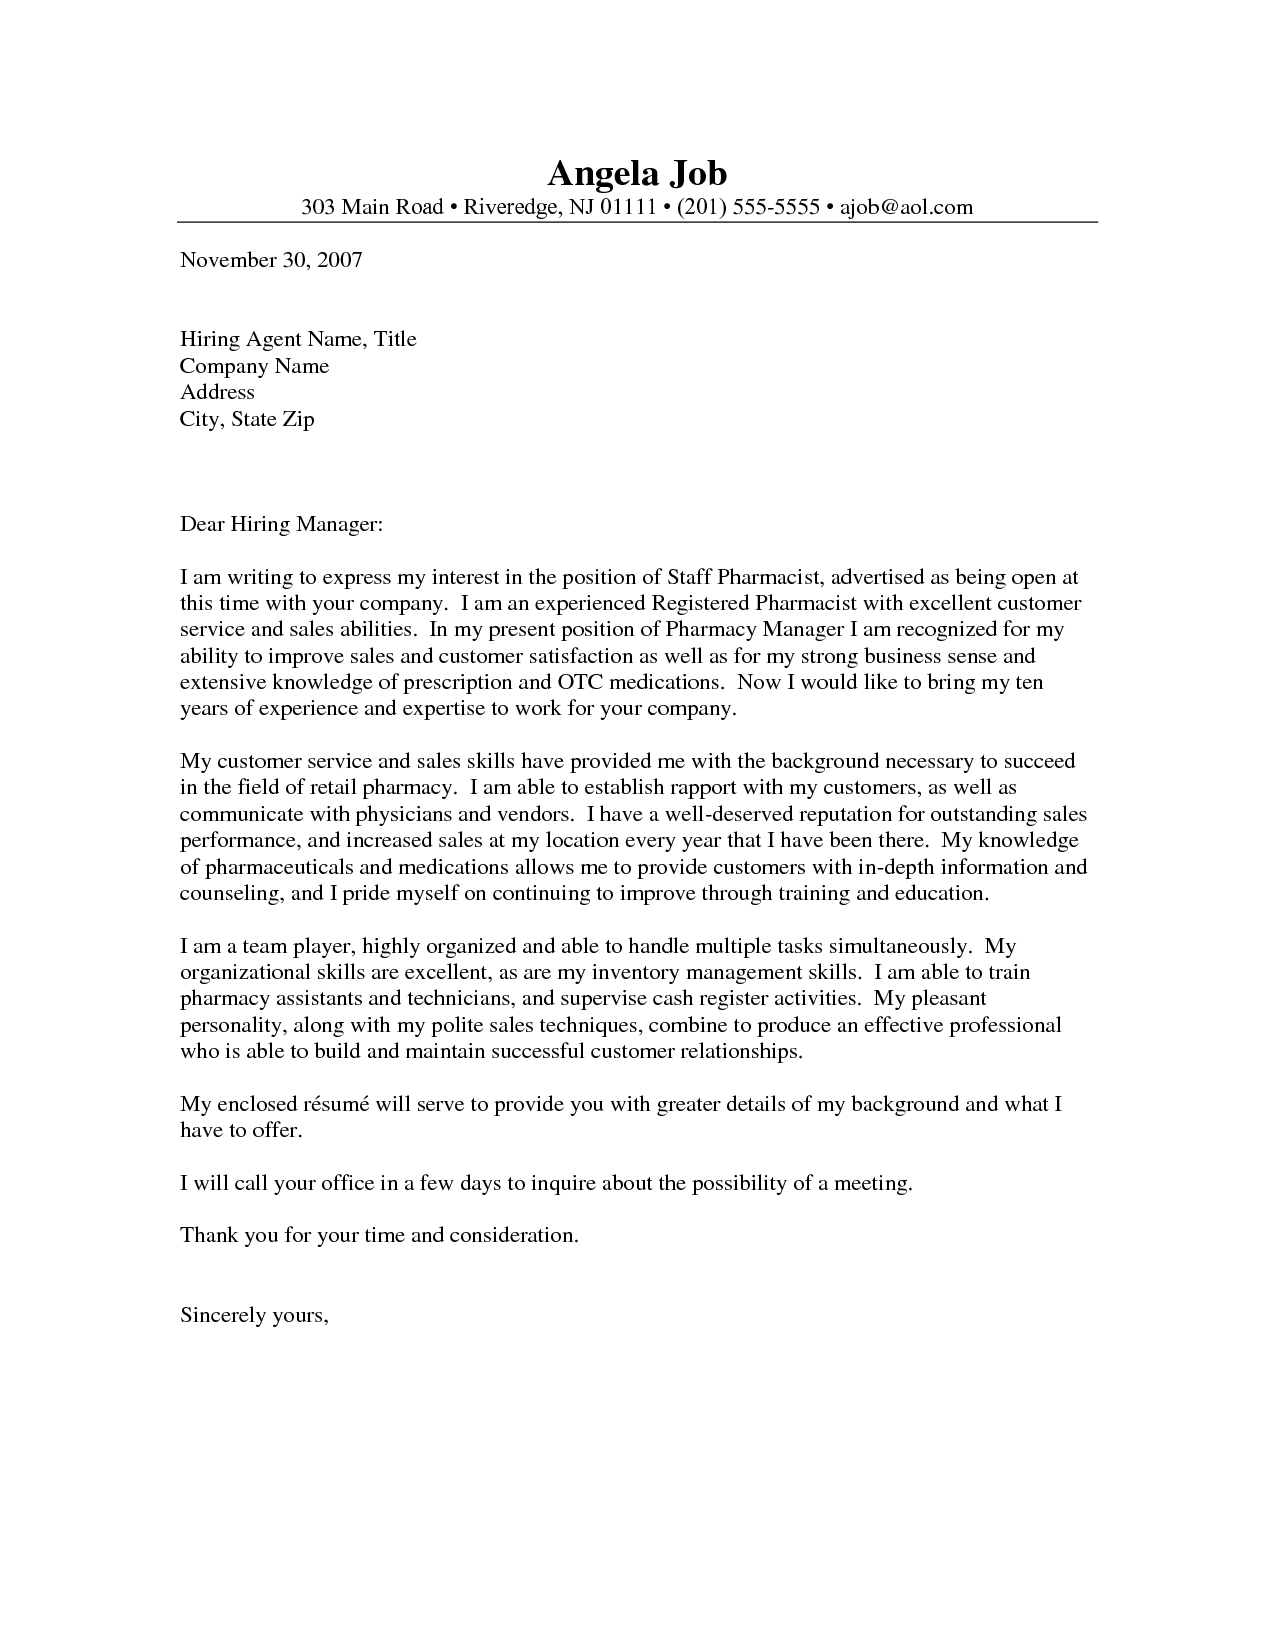 Pharmacy Cover Letter Excellent Sample For Technician The